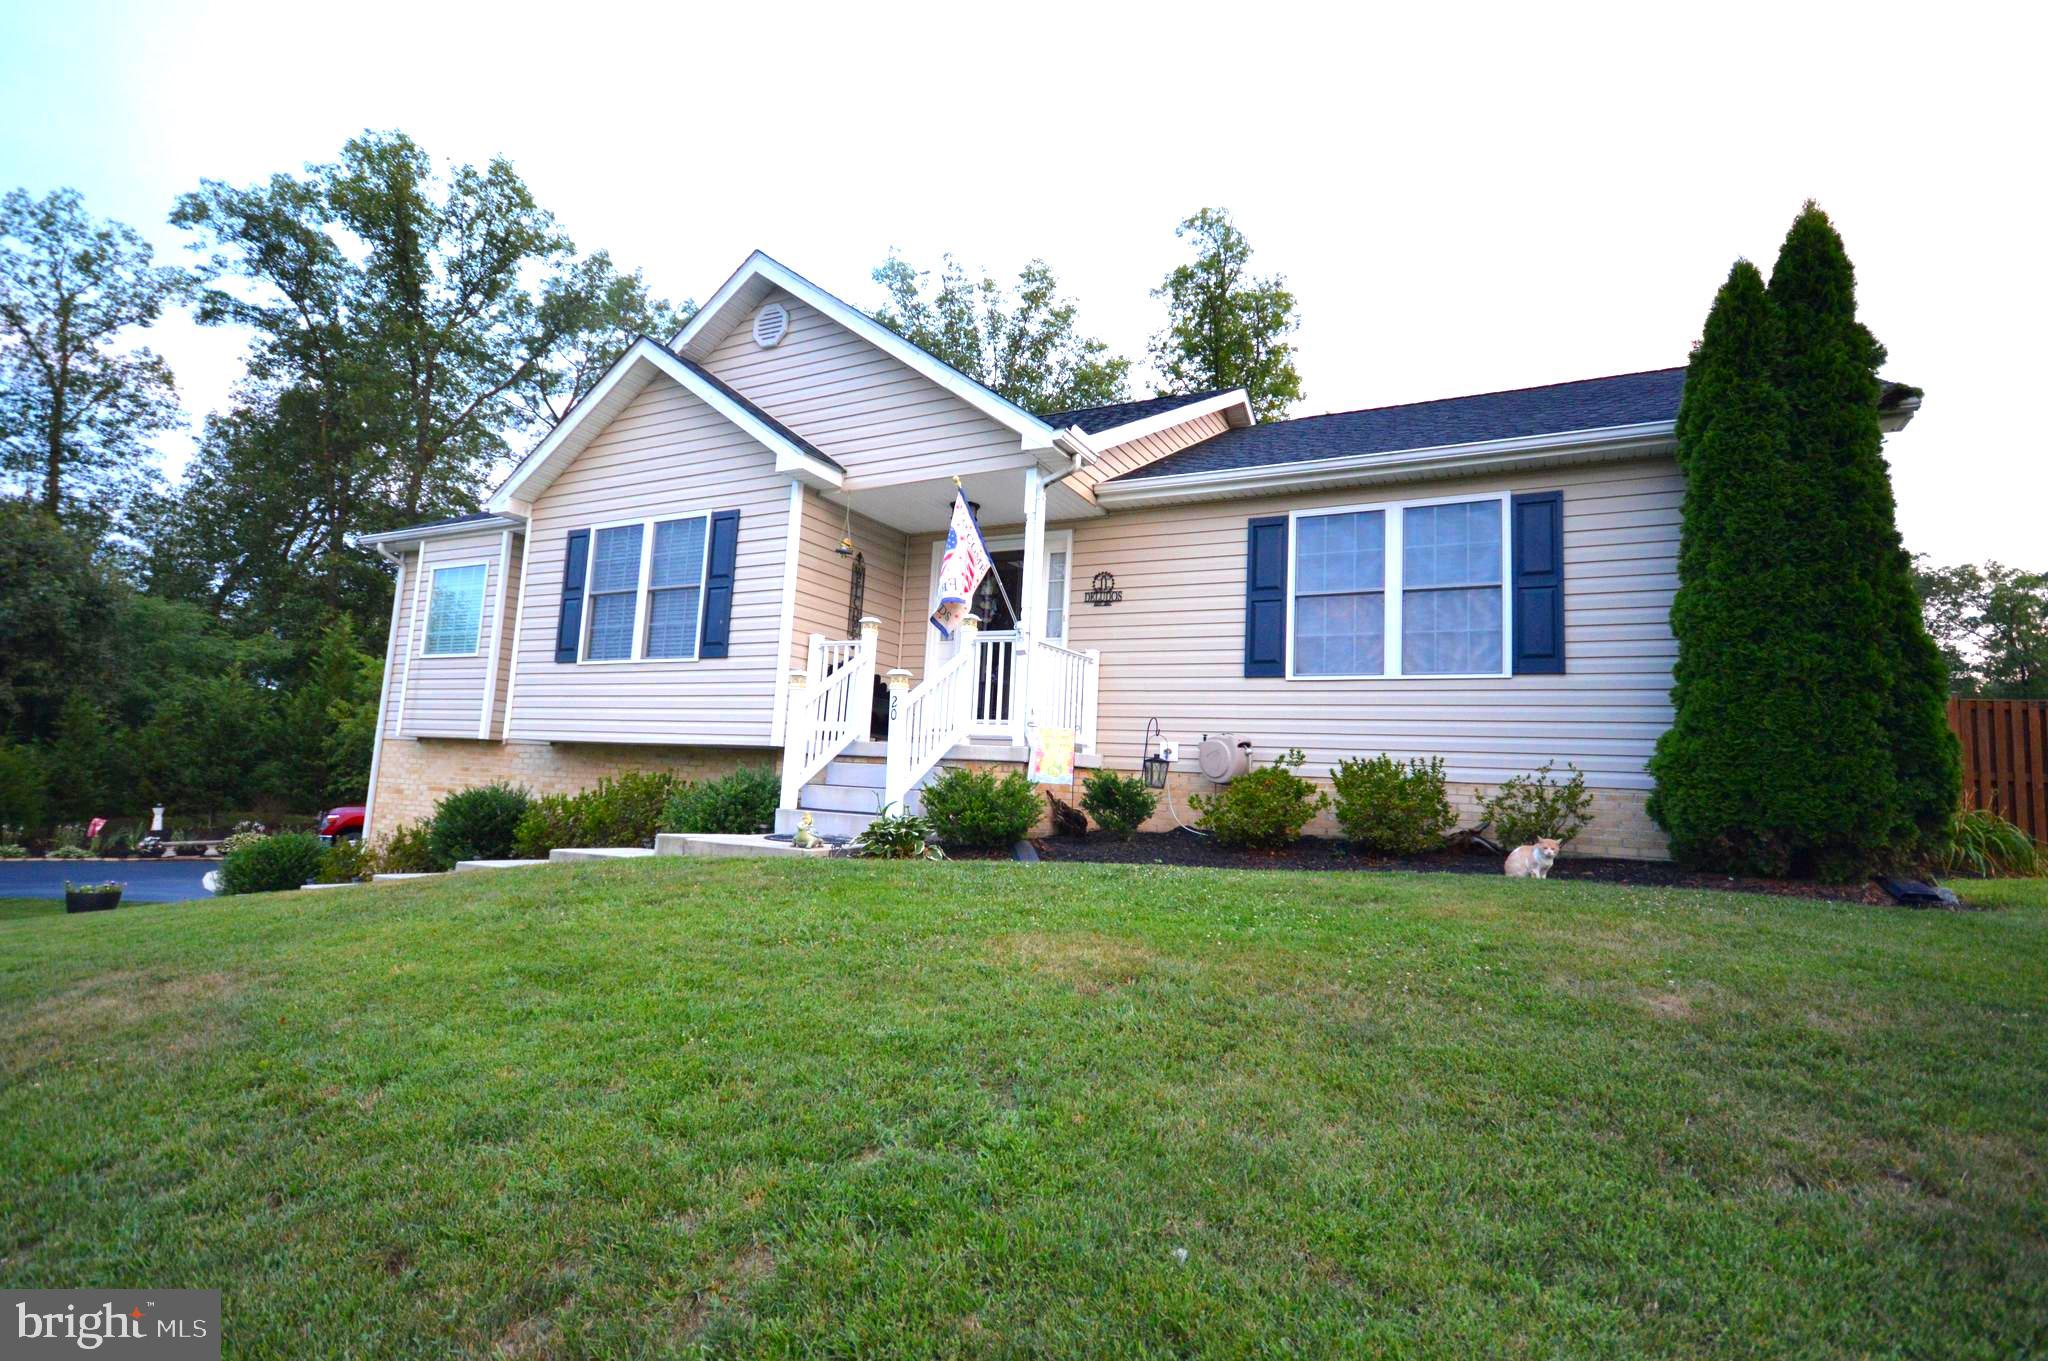 Meticulously cared for ranch style home with attached two car garage coming soon. Situated on a corn